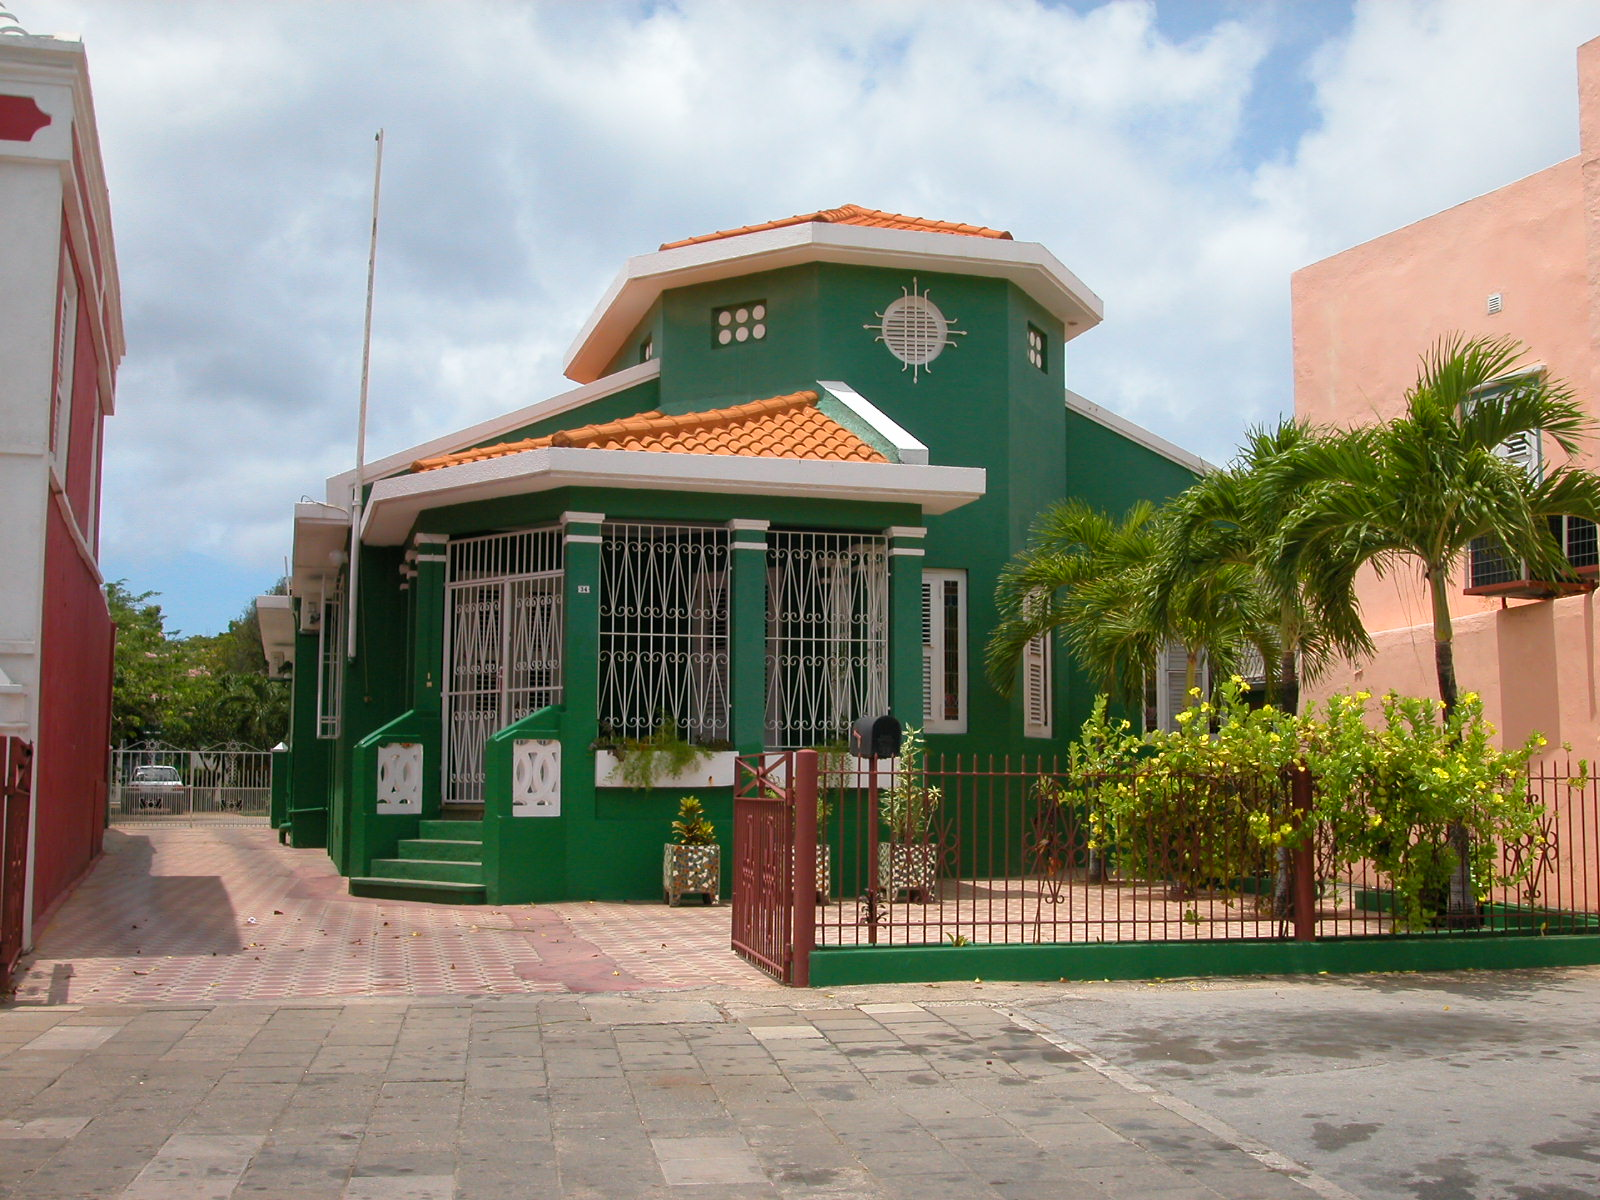 jacco curacao architecture exteriors house green fence palmtree palmtrees